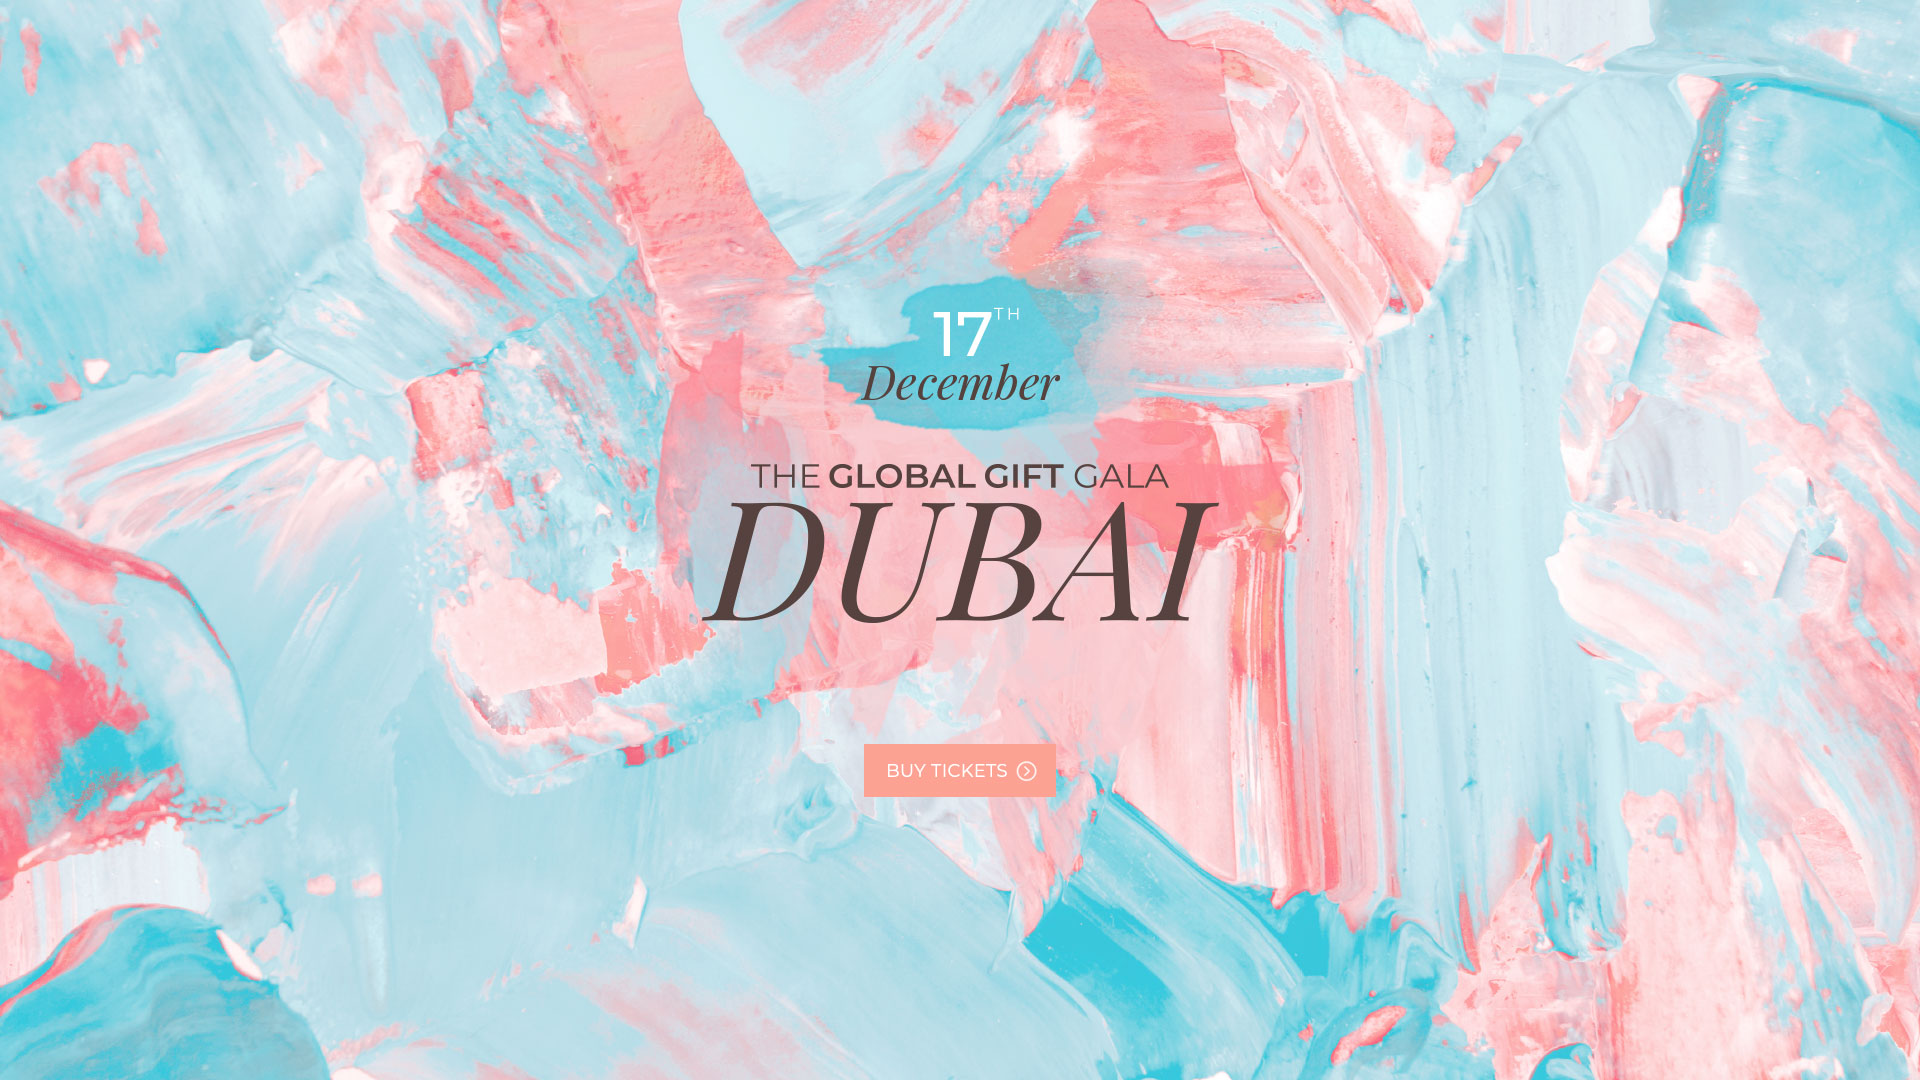 The Global Gift Gala Dubai 2019